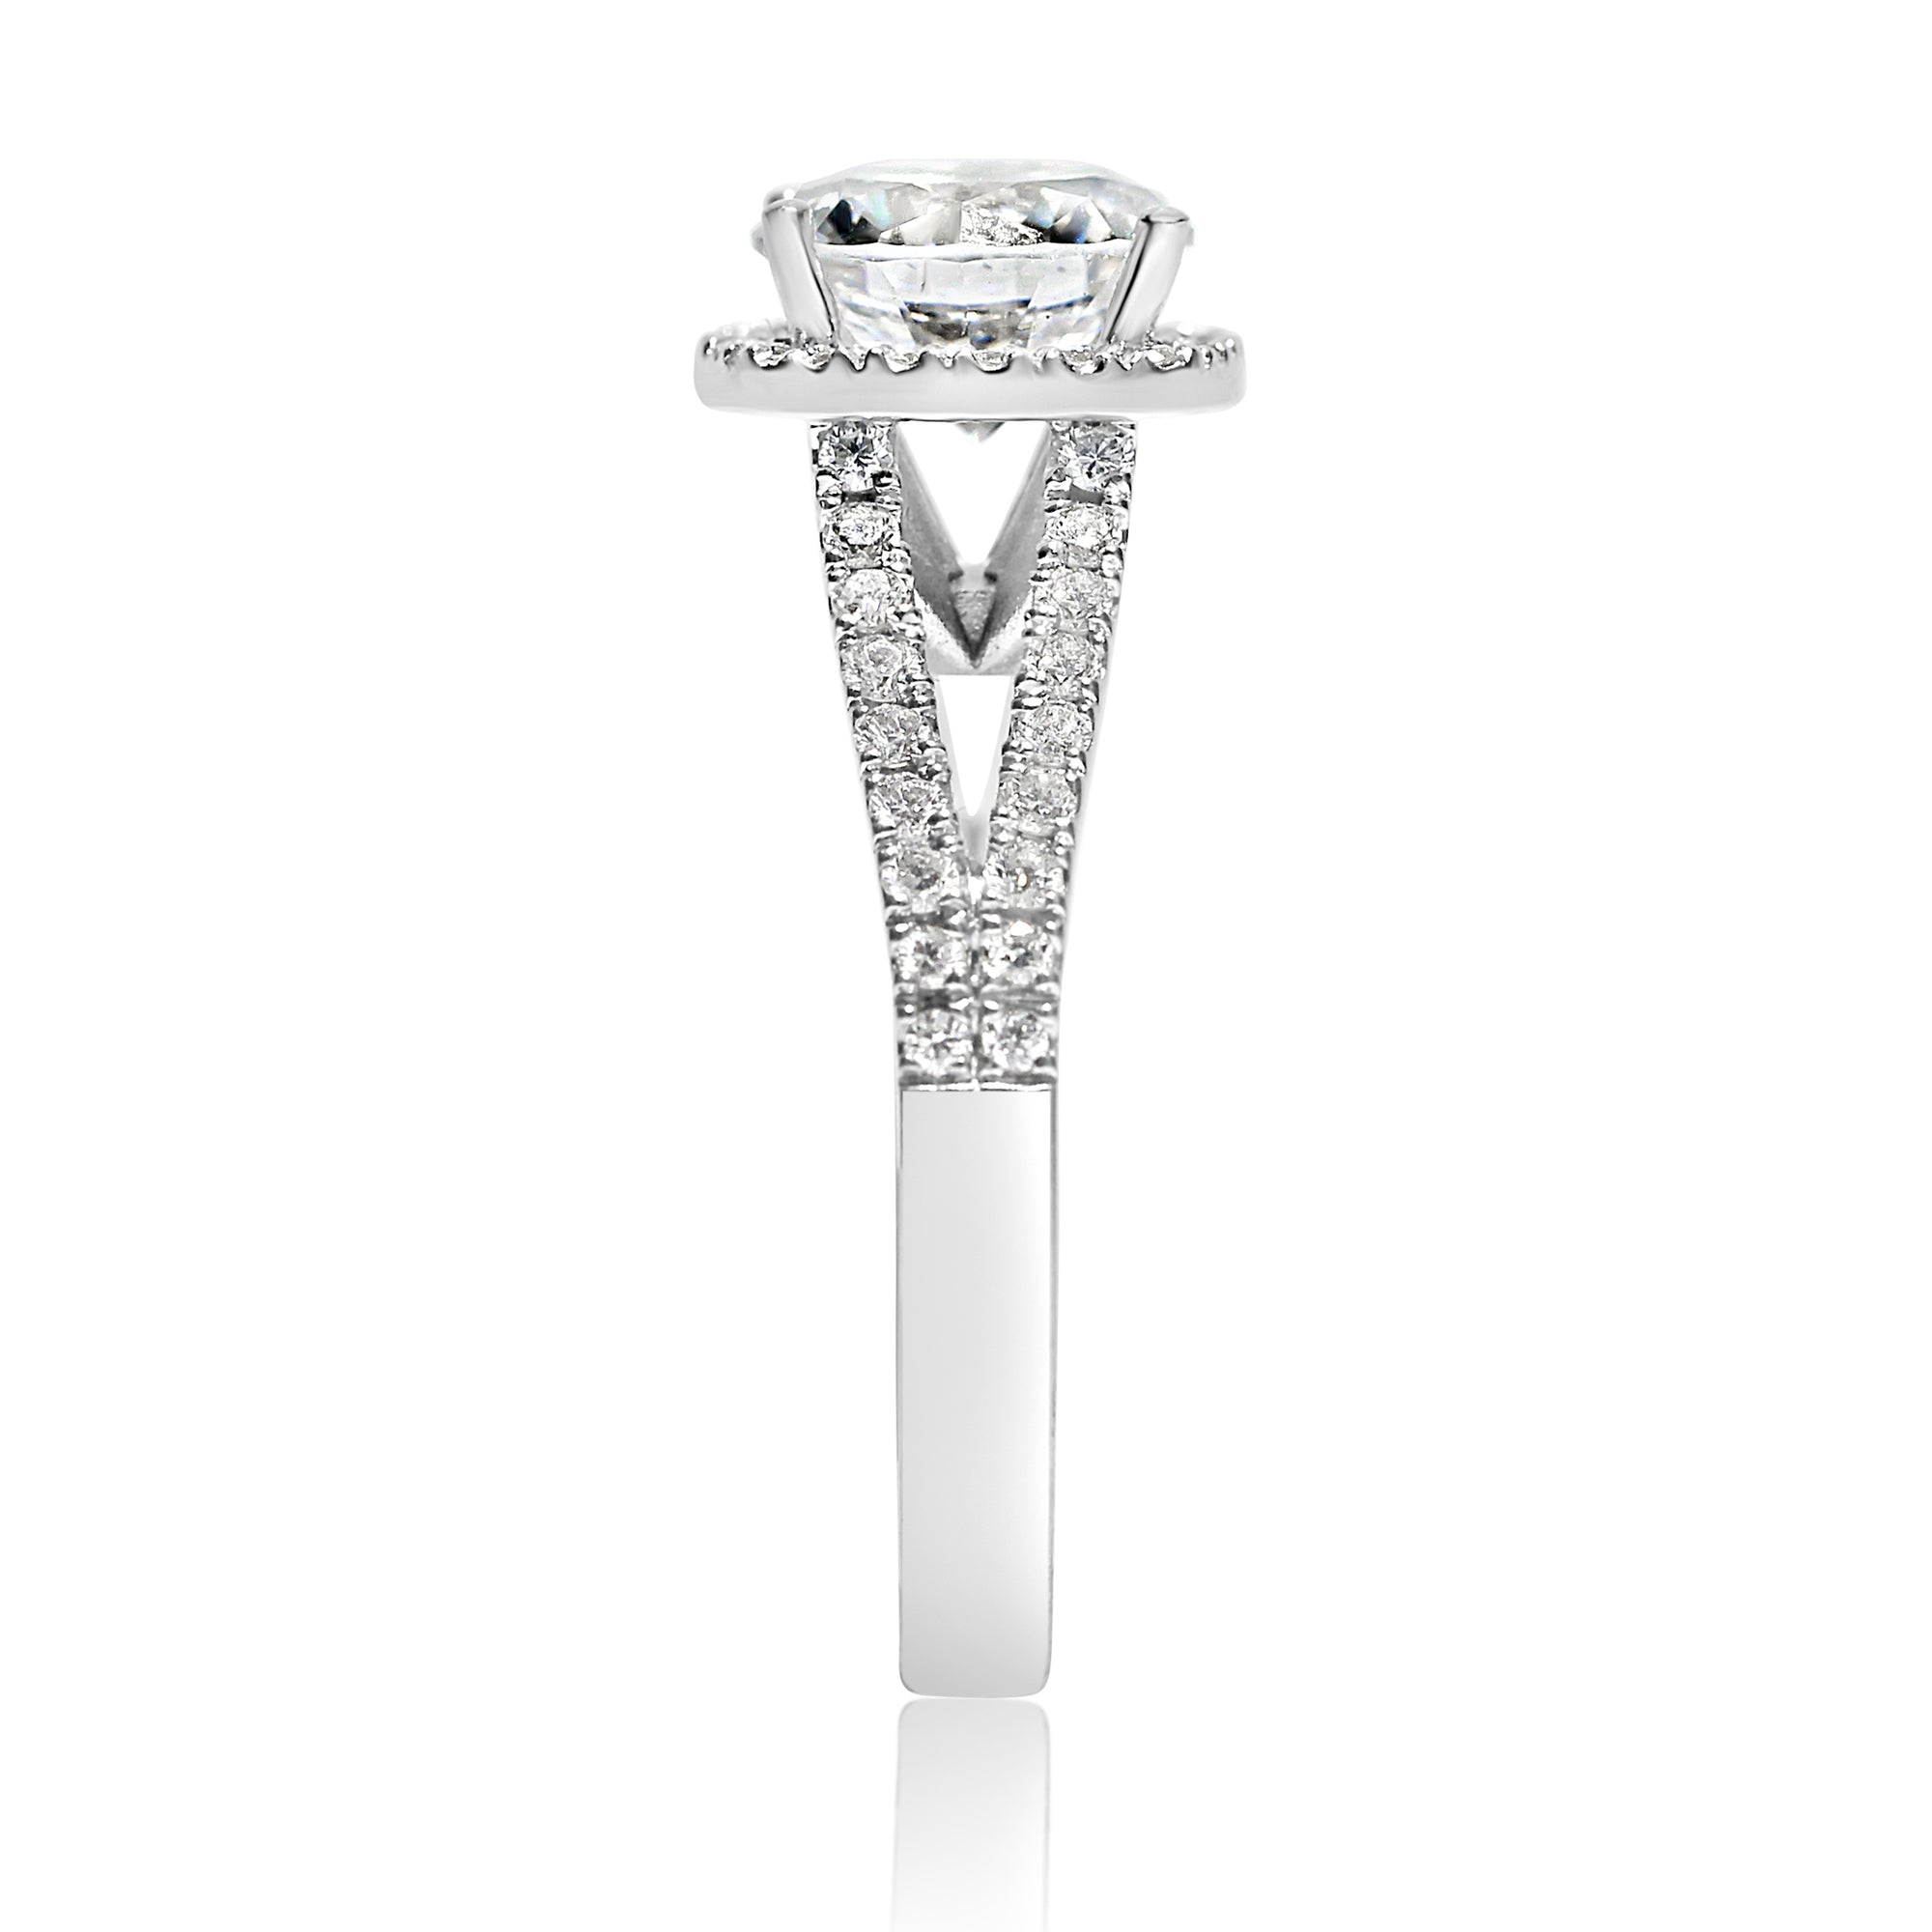 diamond rounded in trellis round engagement myytsdx platinum ring three stone